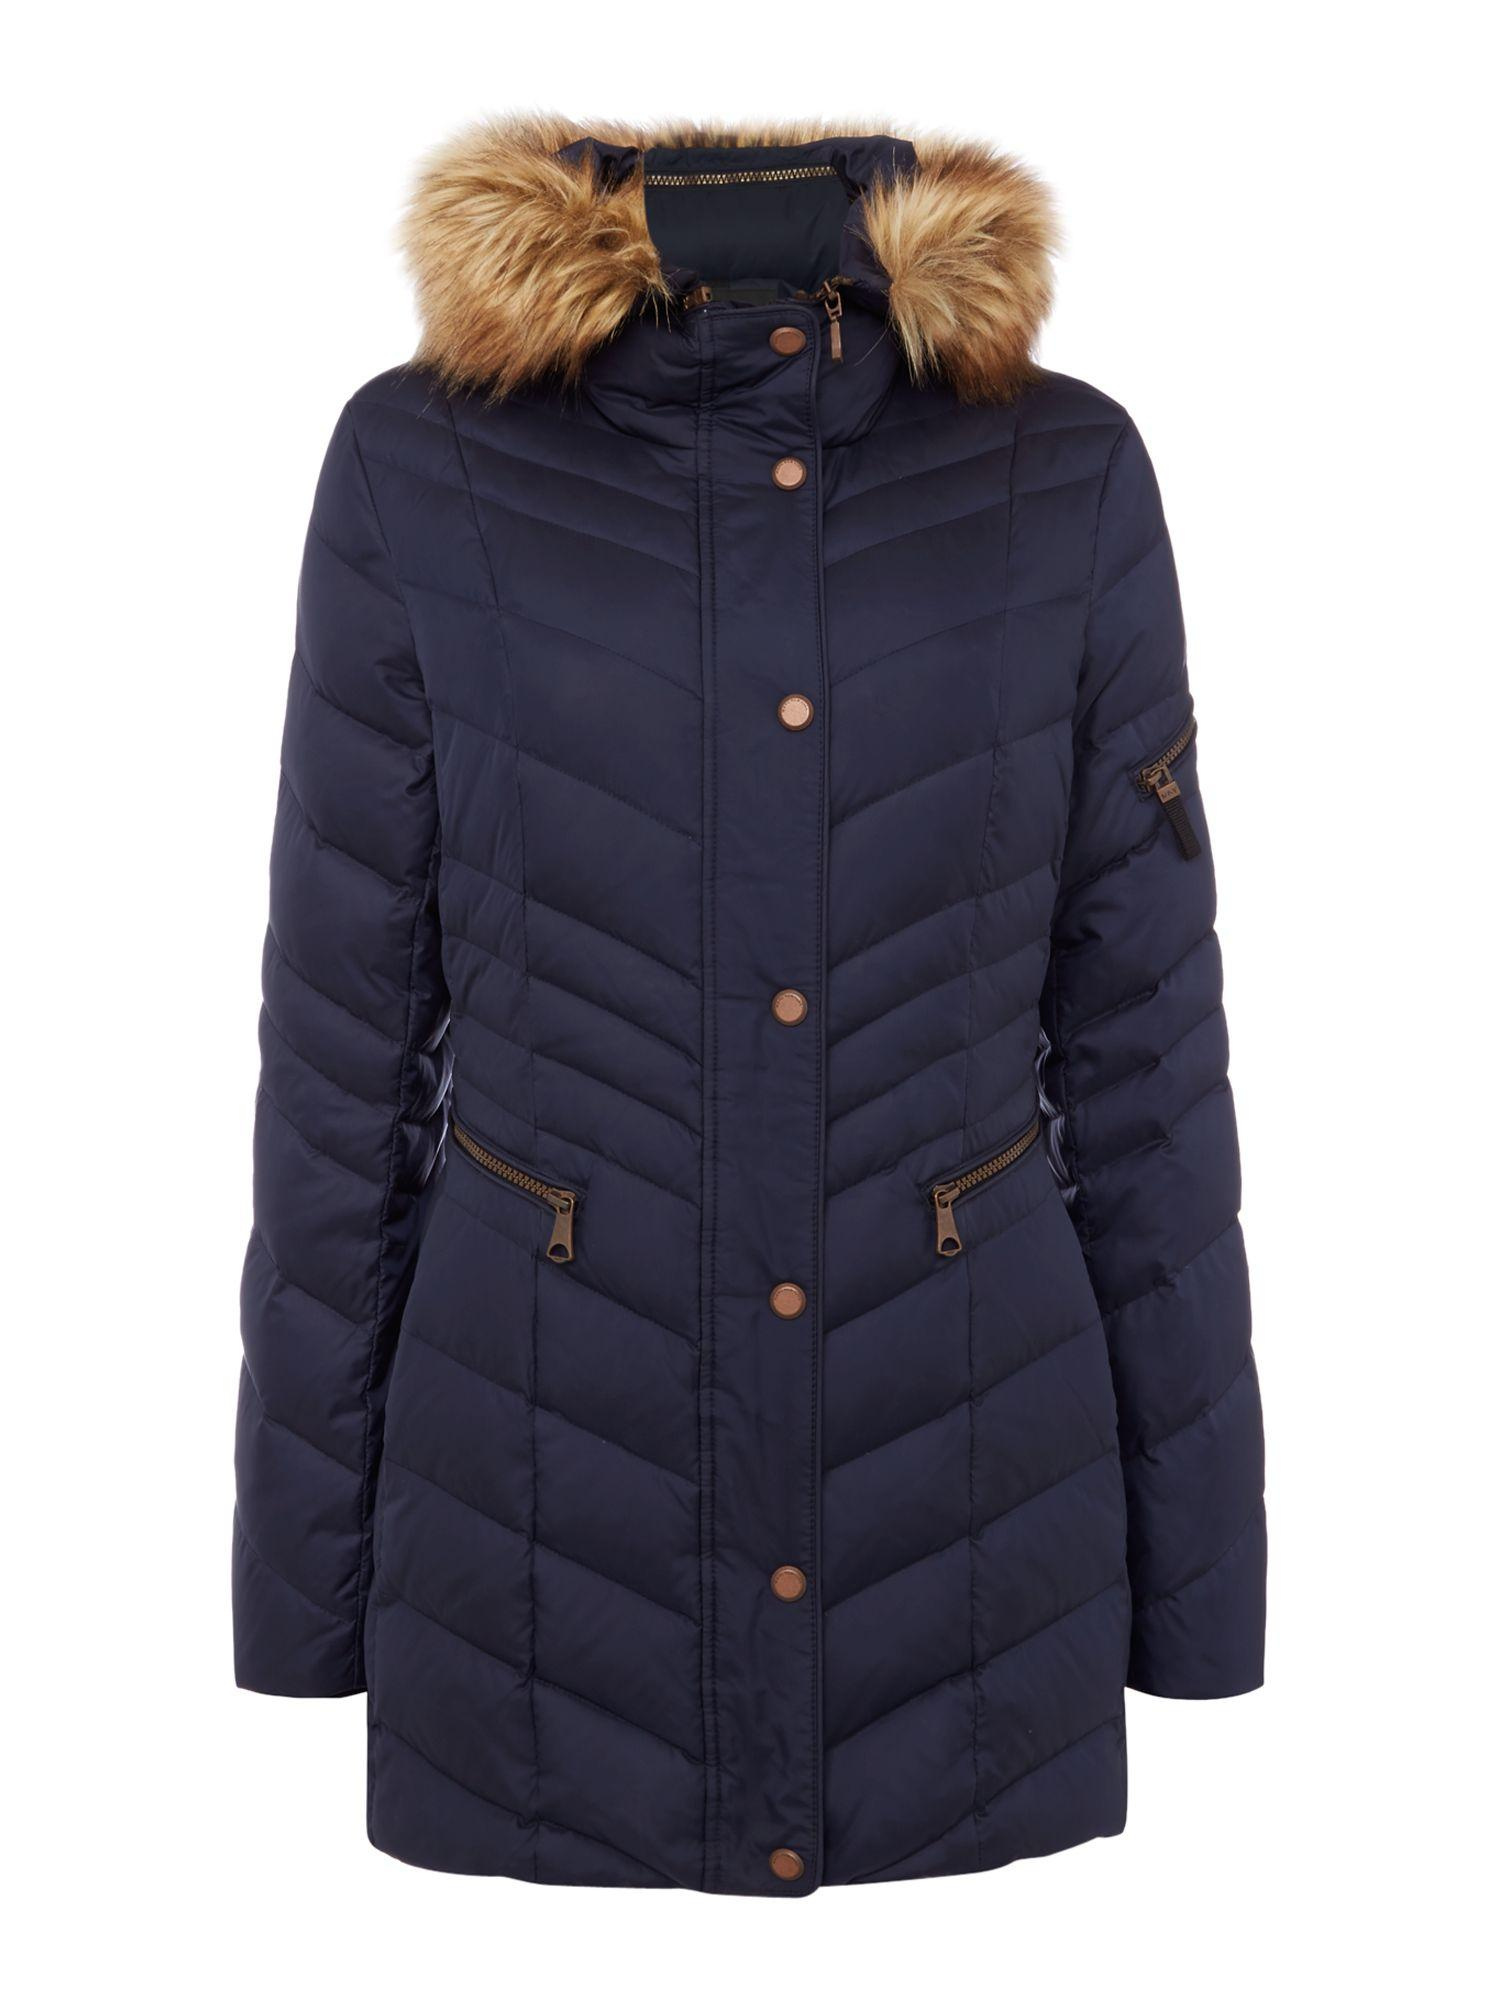 Andrew Marc Padded Coat With Faux Fur Hood In Navy Blue